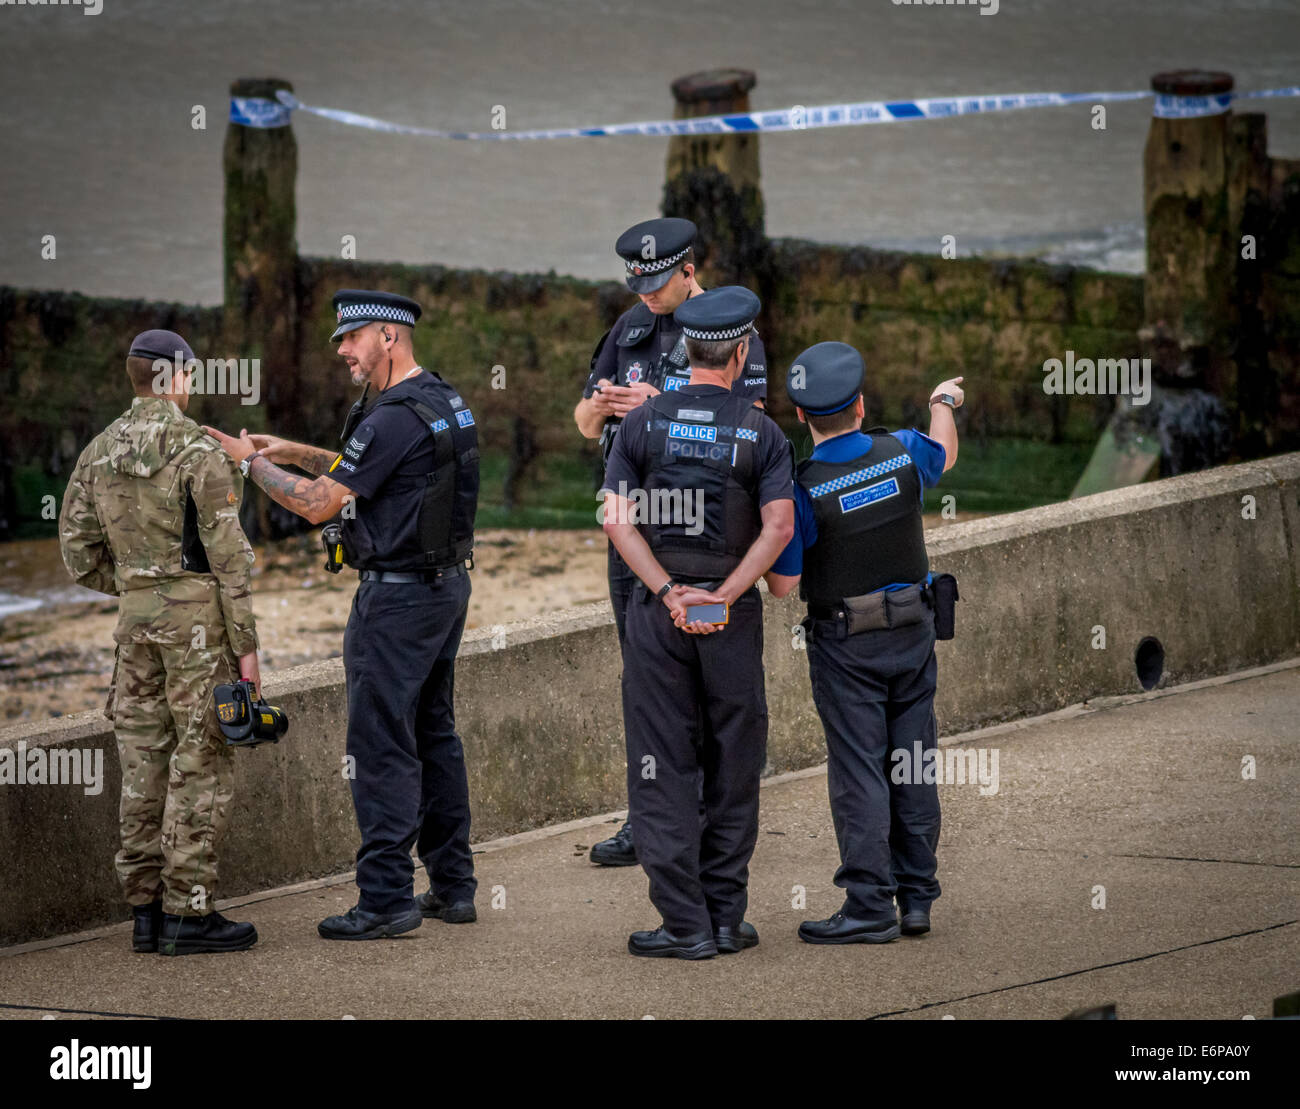 Bomb disposal and police at beach scene - Stock Image